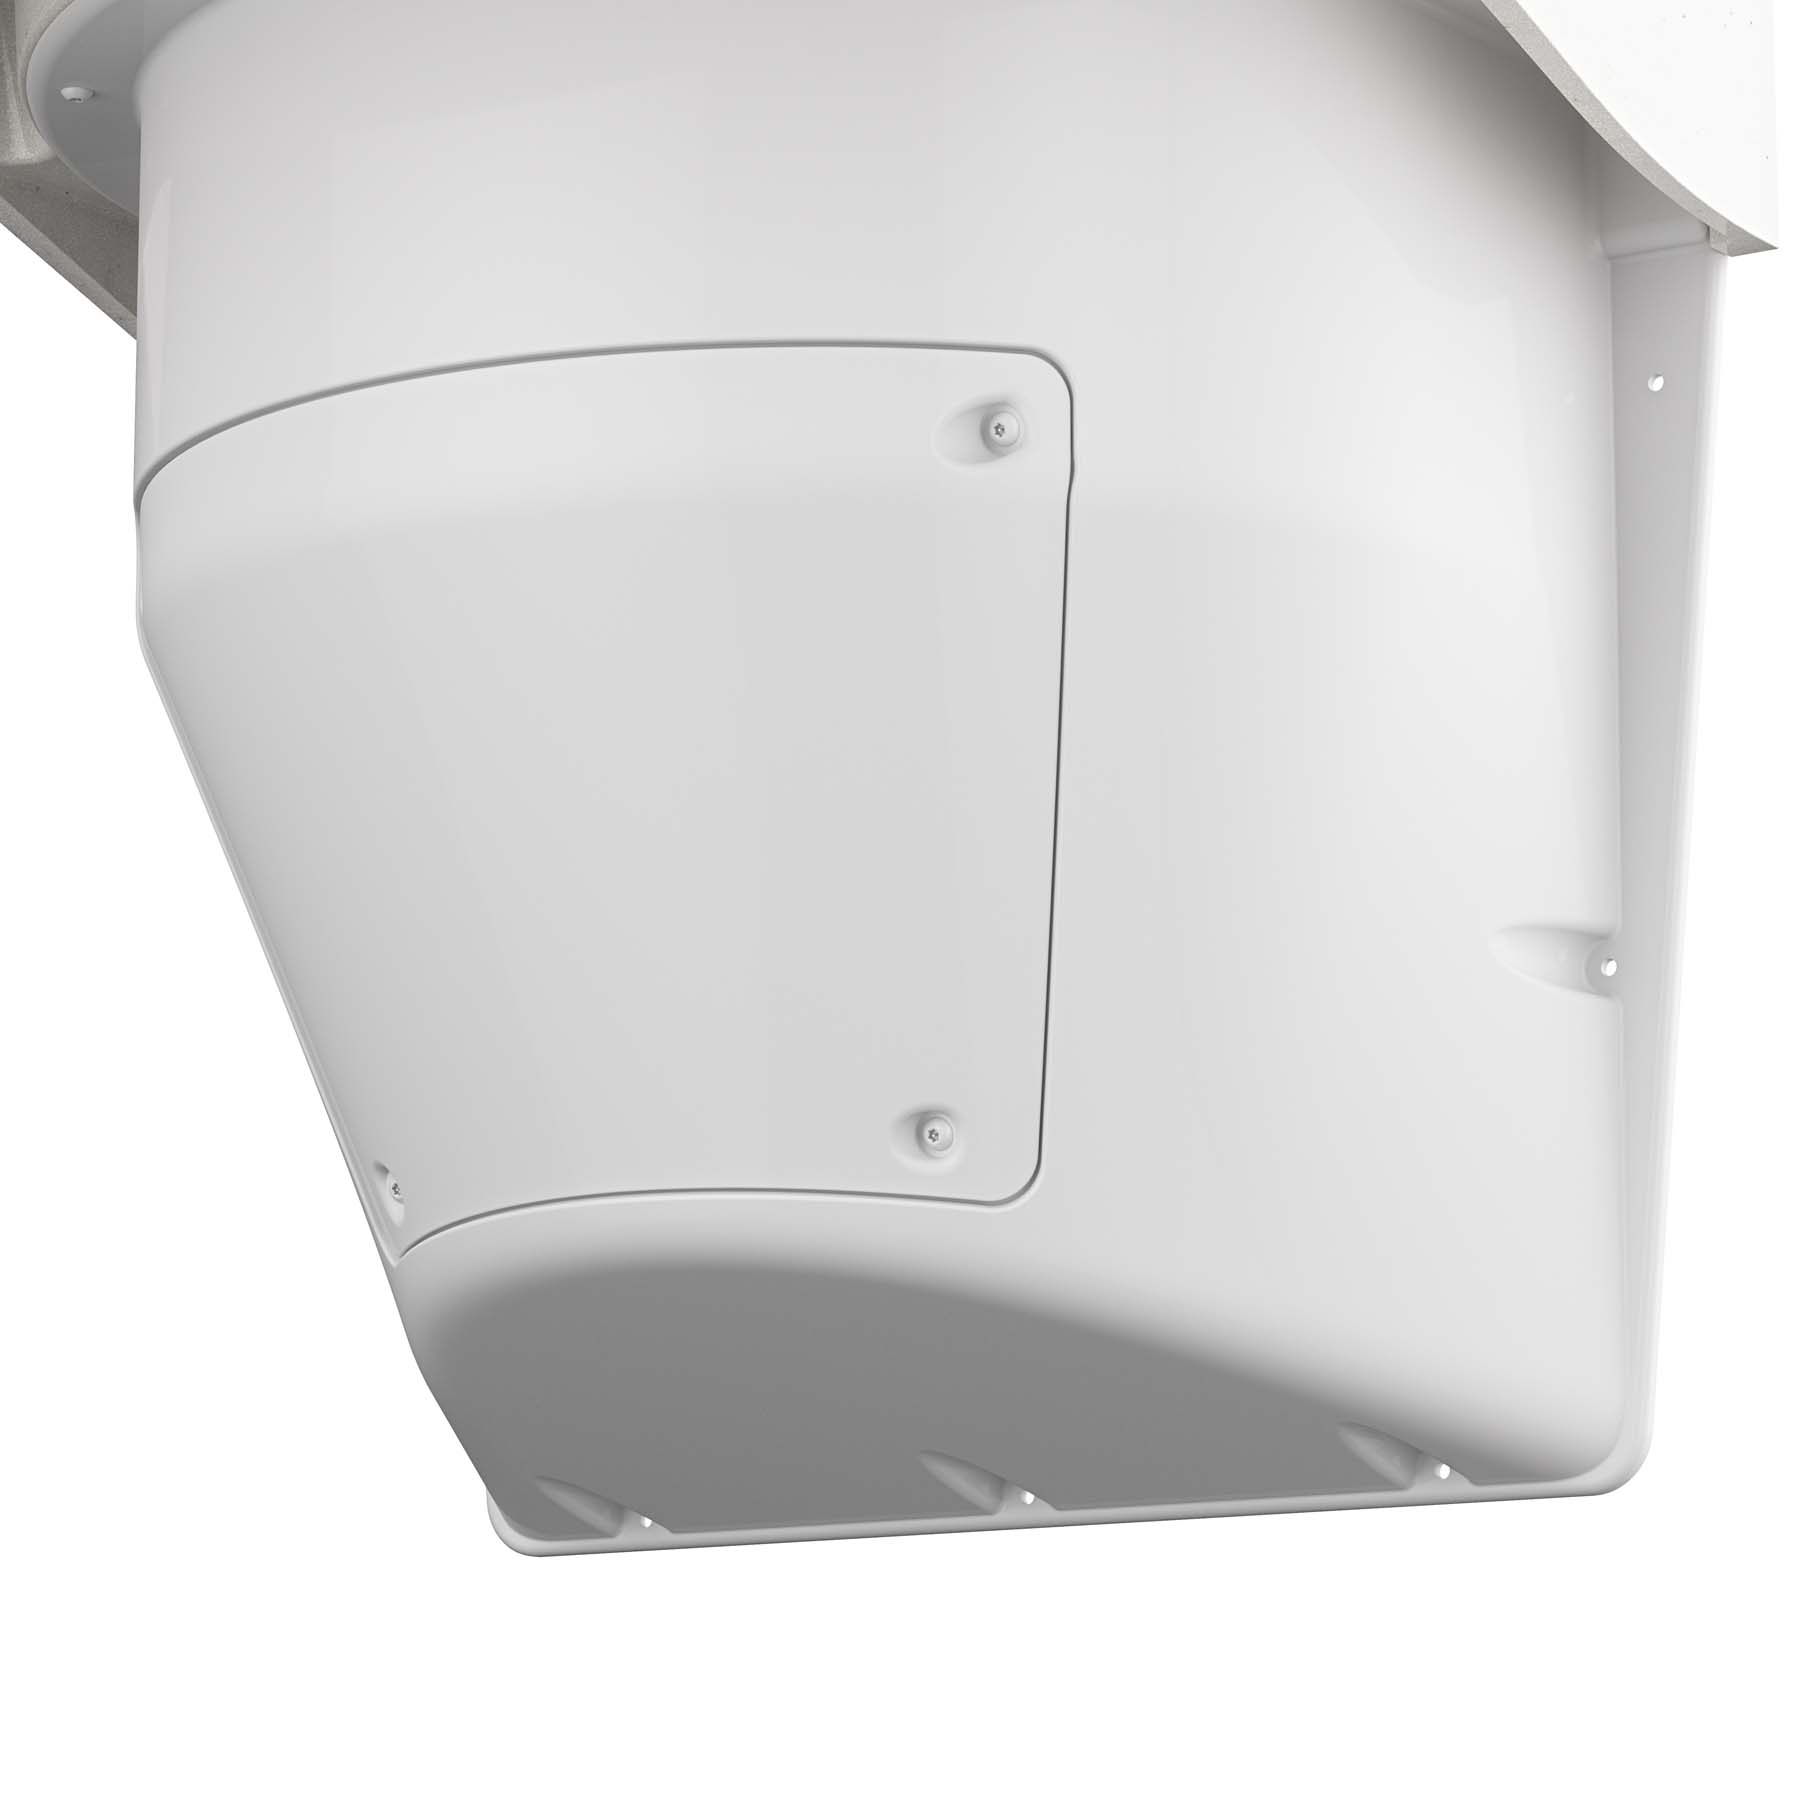 Ligature Resistant Sink and Trap Cover - From Bottom Angle